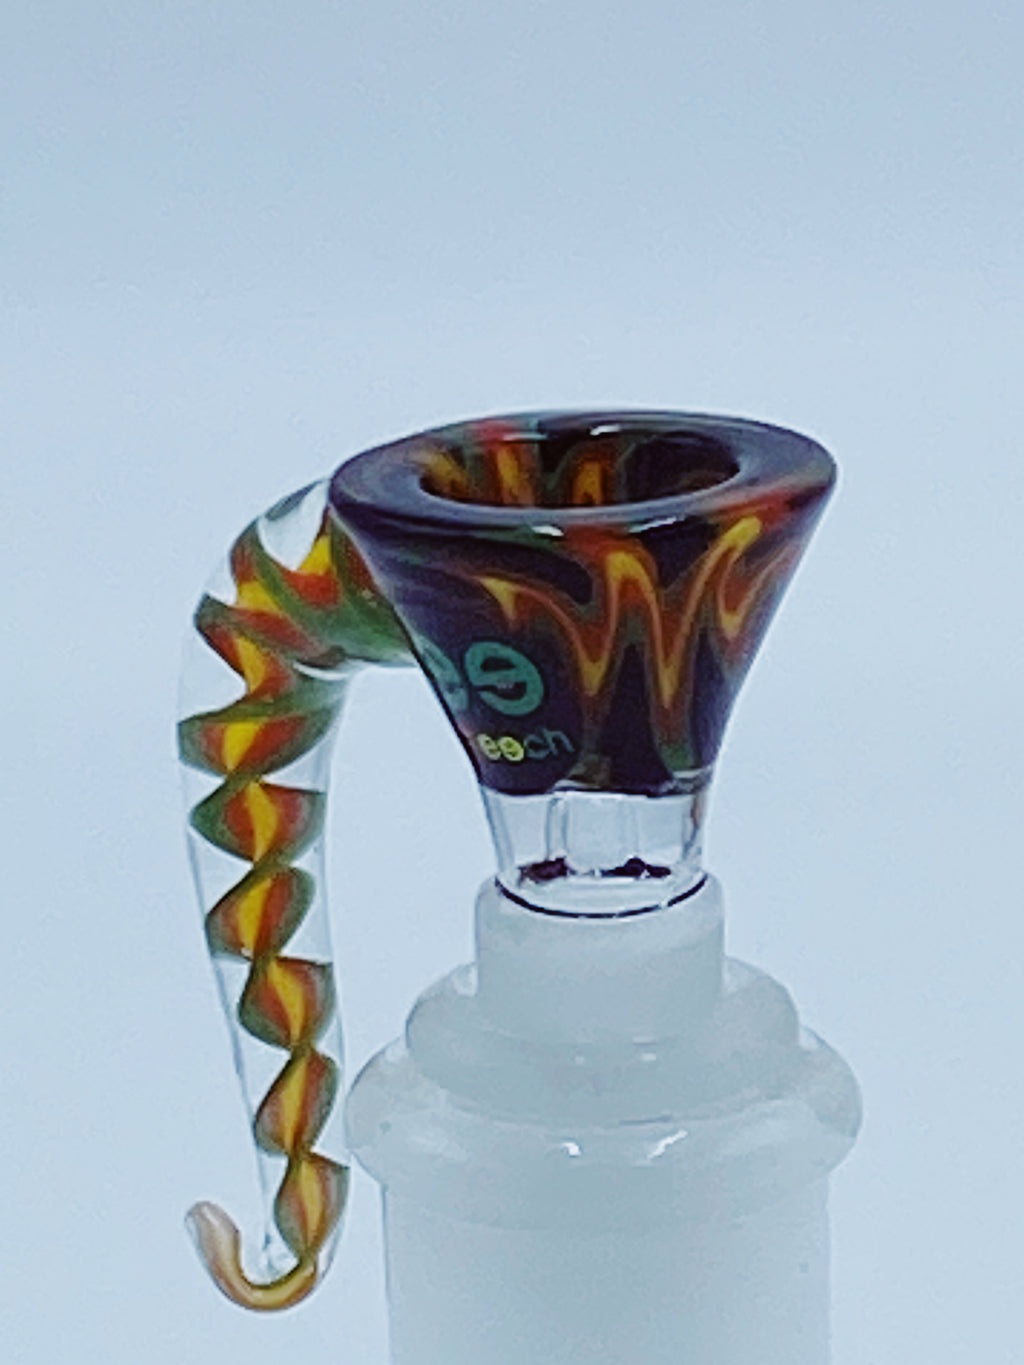 CHEECH GLASS 14mm WORKED HORN BOWL - Smoke Country - Land of the artistic glass blown bongs